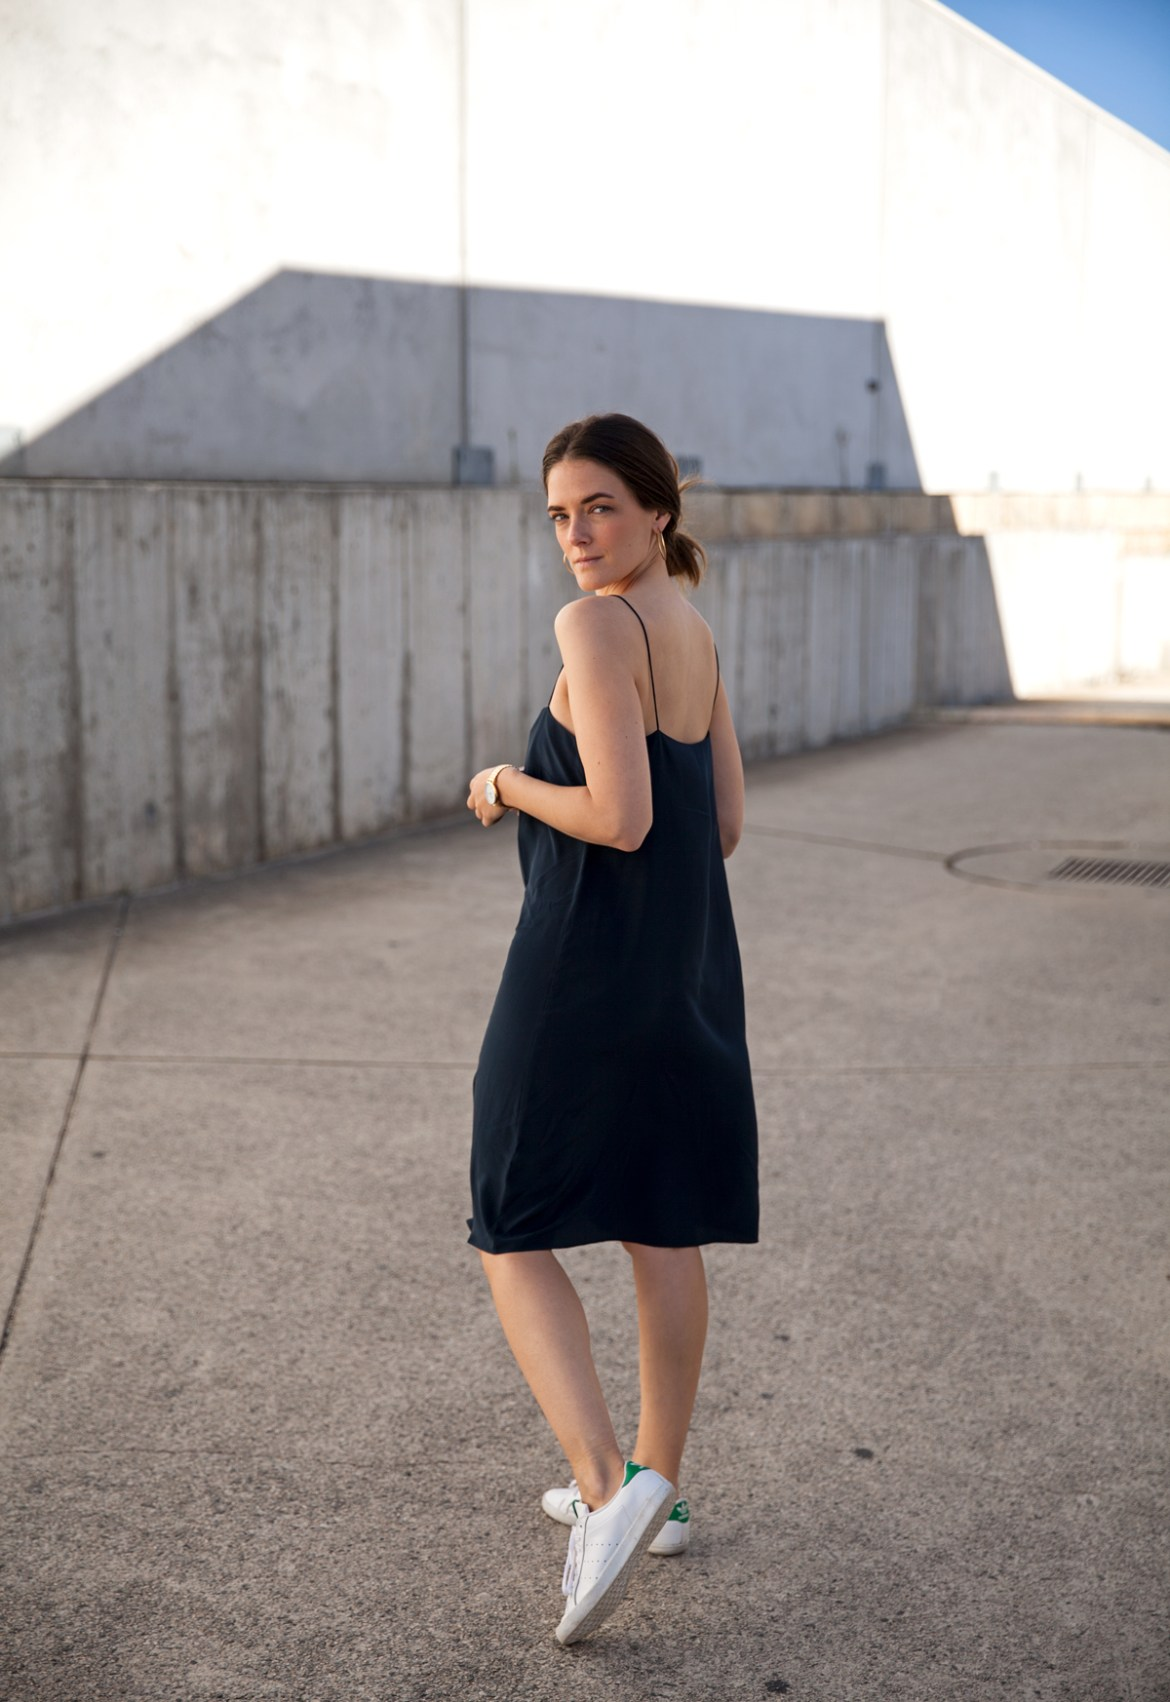 Ginia RTW navy silk slip dress worn by Inspiring Wit fashion blogger Jenelle Witty.